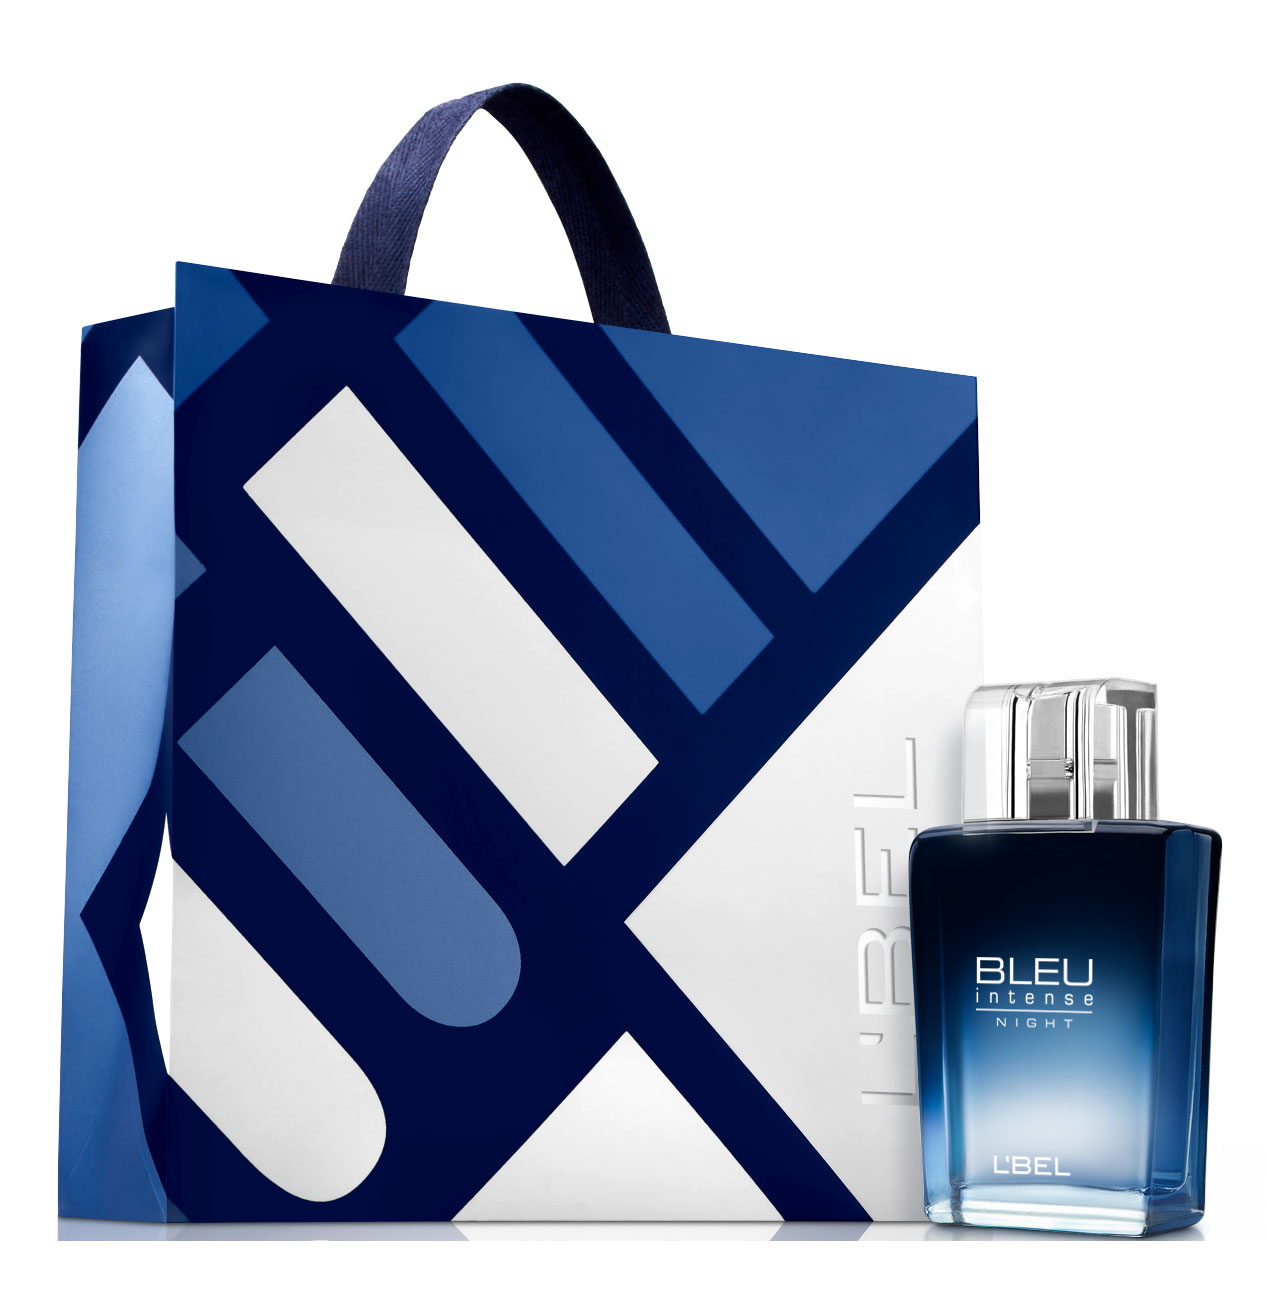 SET BLEU INTENSE MINI BLEUNIGHT